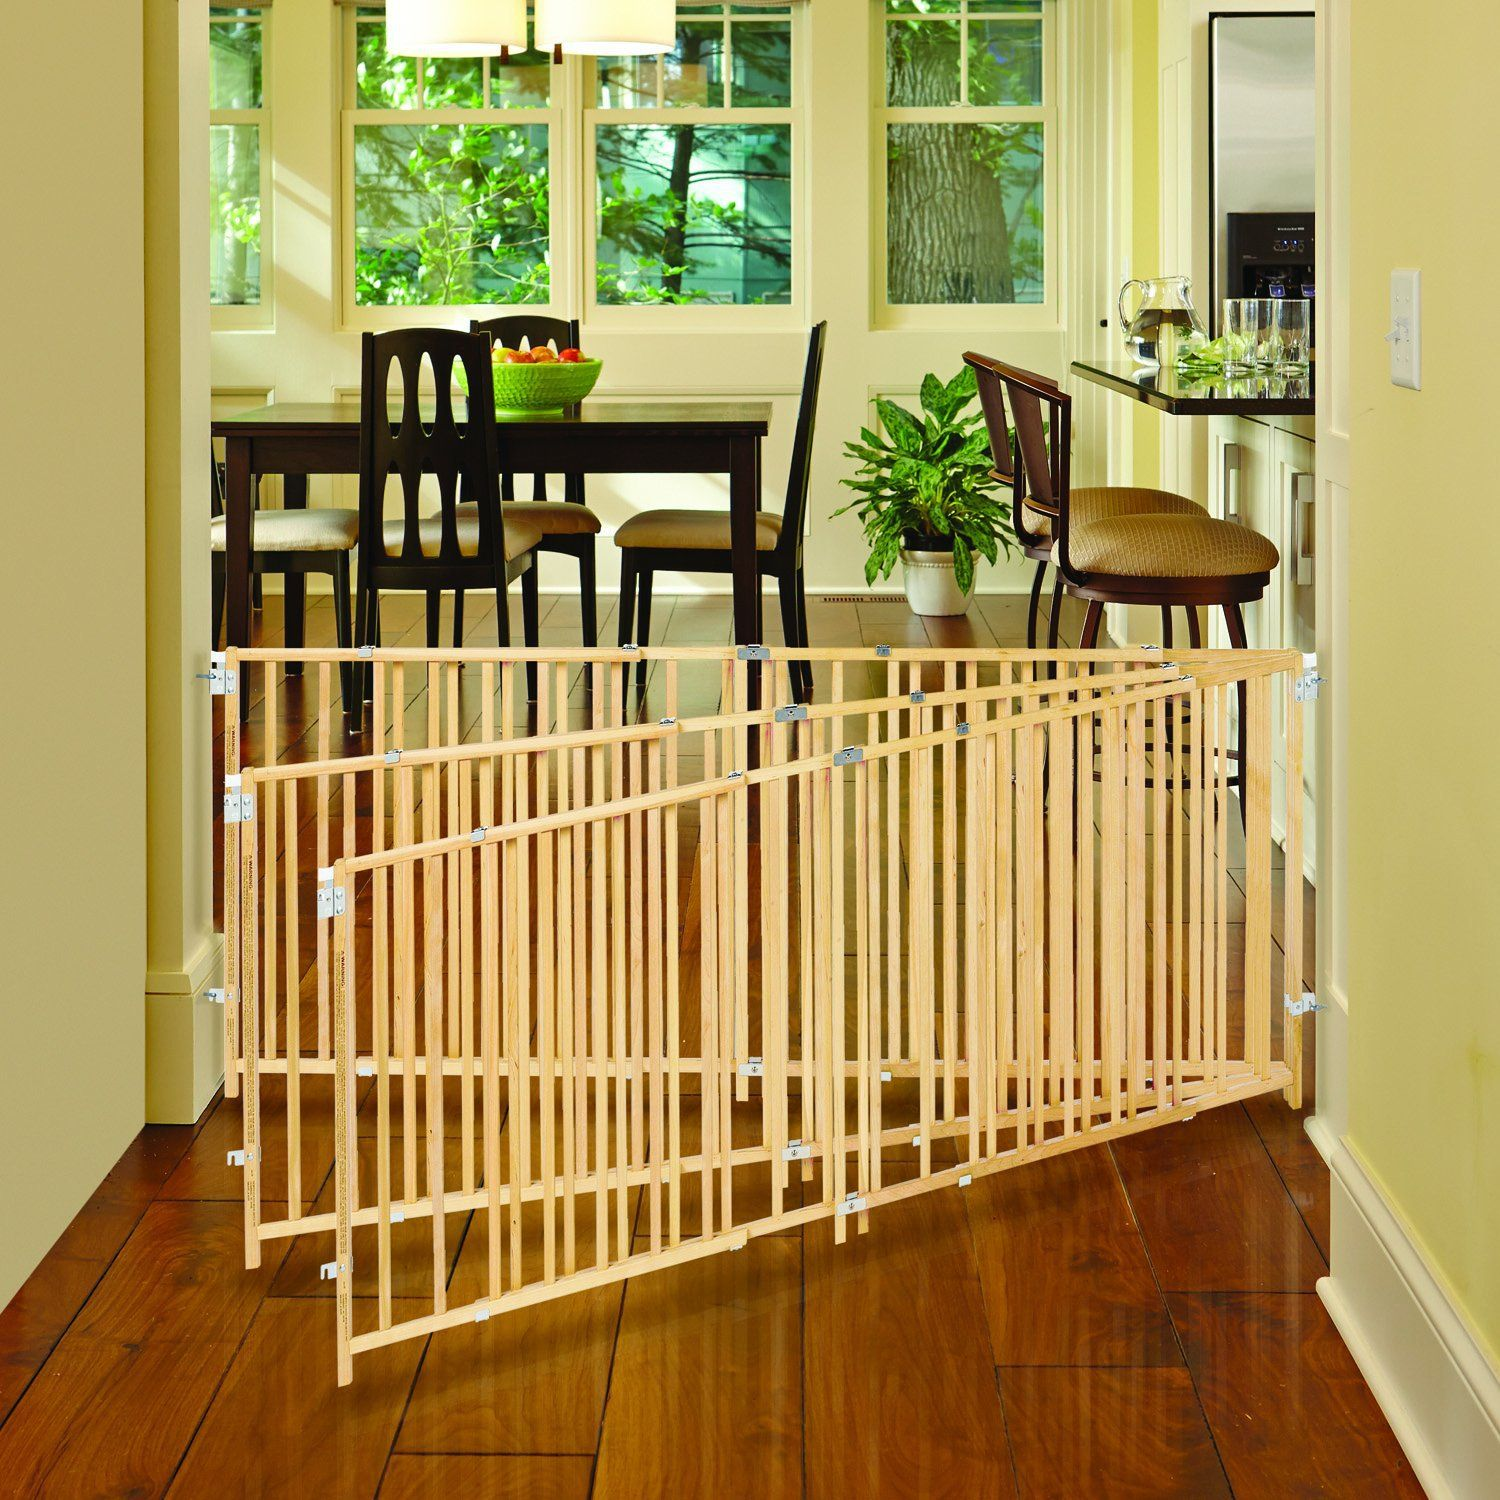 North States Supergate Wood Gate swings open and expands